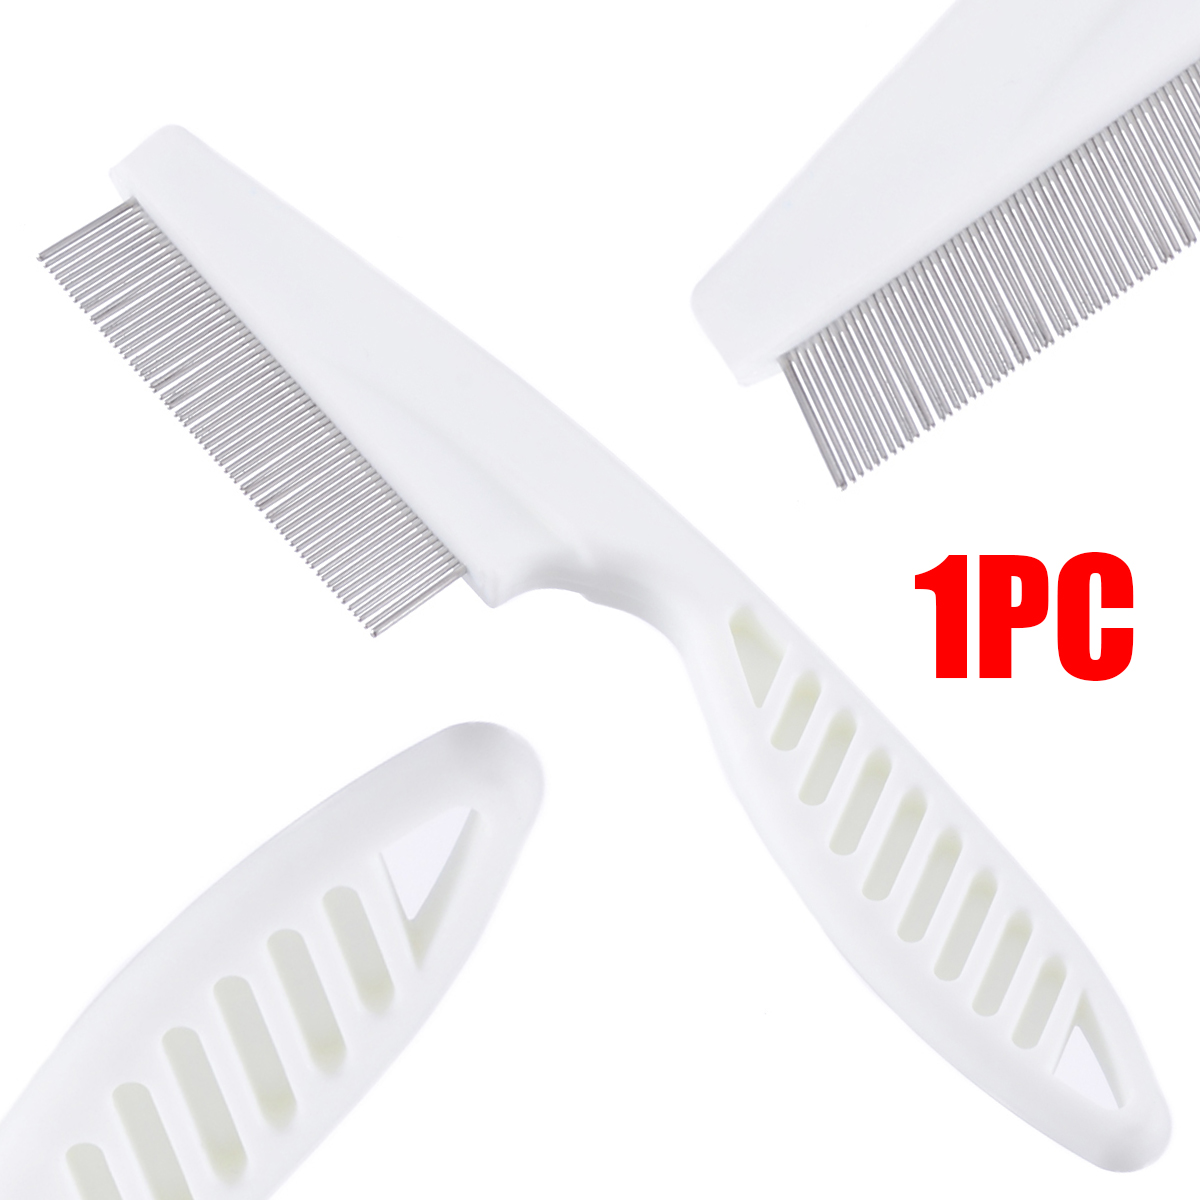 1pc High Comfort Head Lice Comb Metal Nit Head Hair Lice Comb Fine Toothed Flea Flee With Handle For Kids Pet Tool